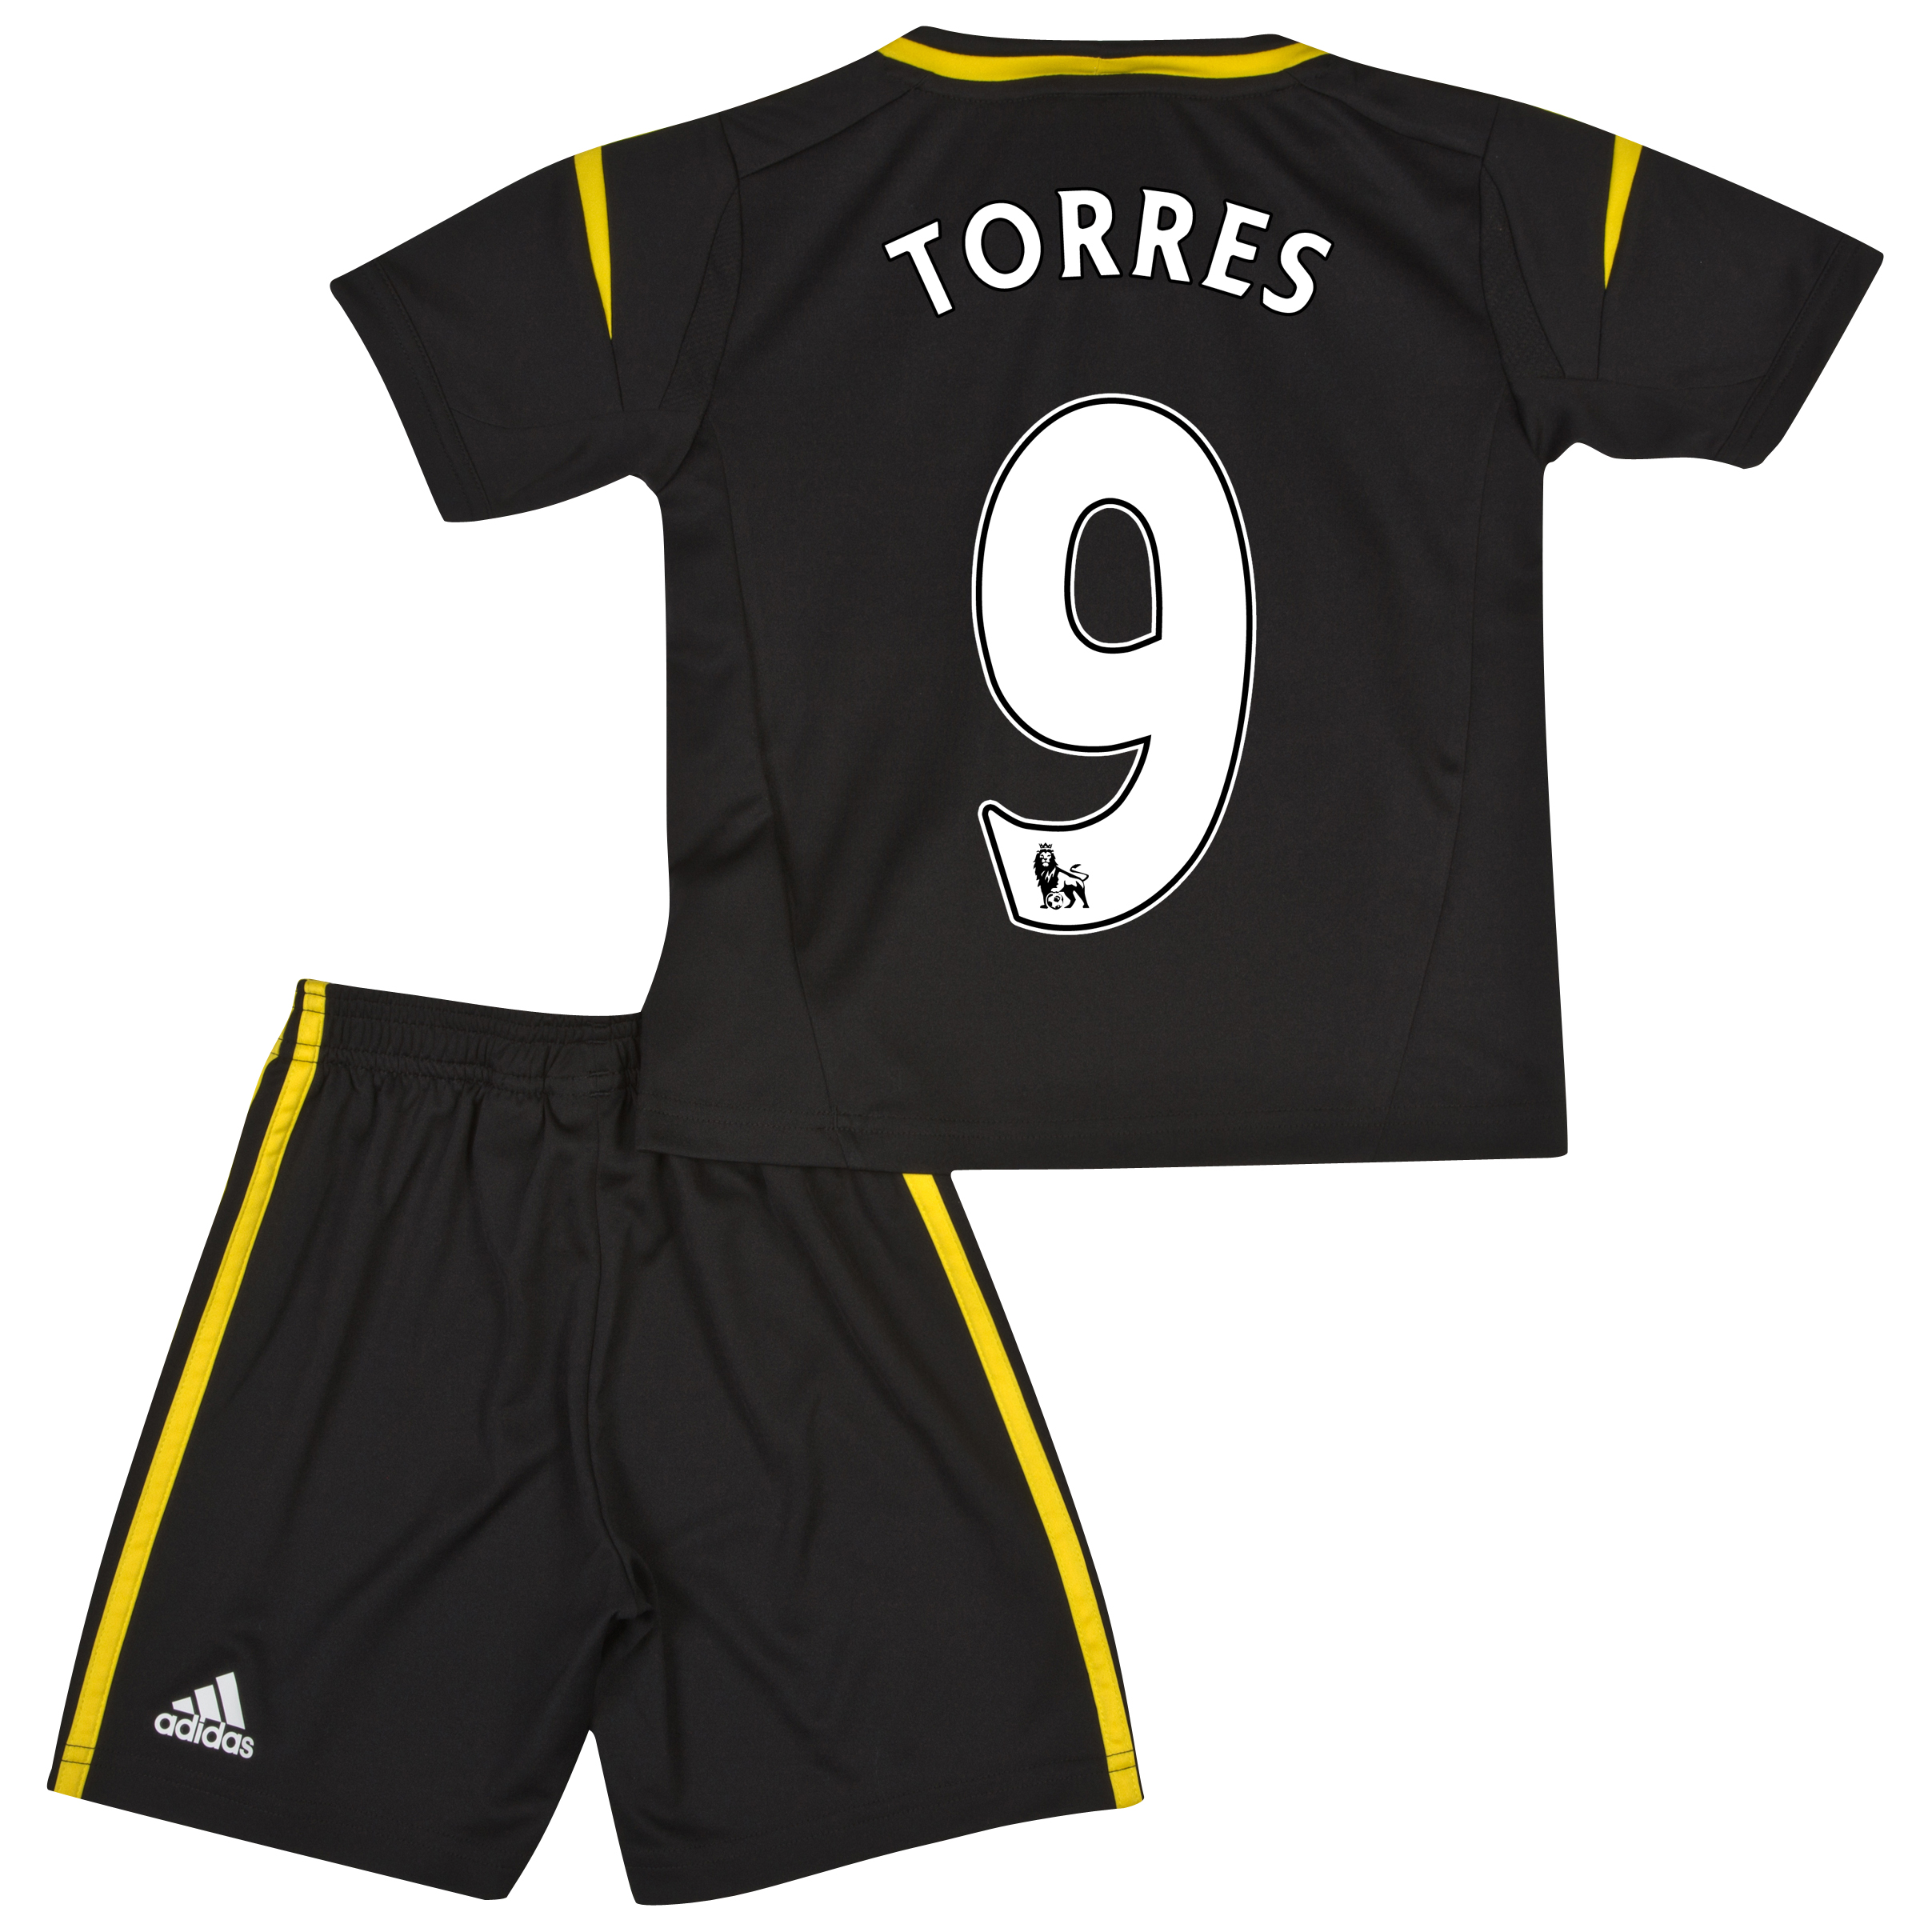 Chelsea Third Mini Kit 2012/13 with Torres 9 printing